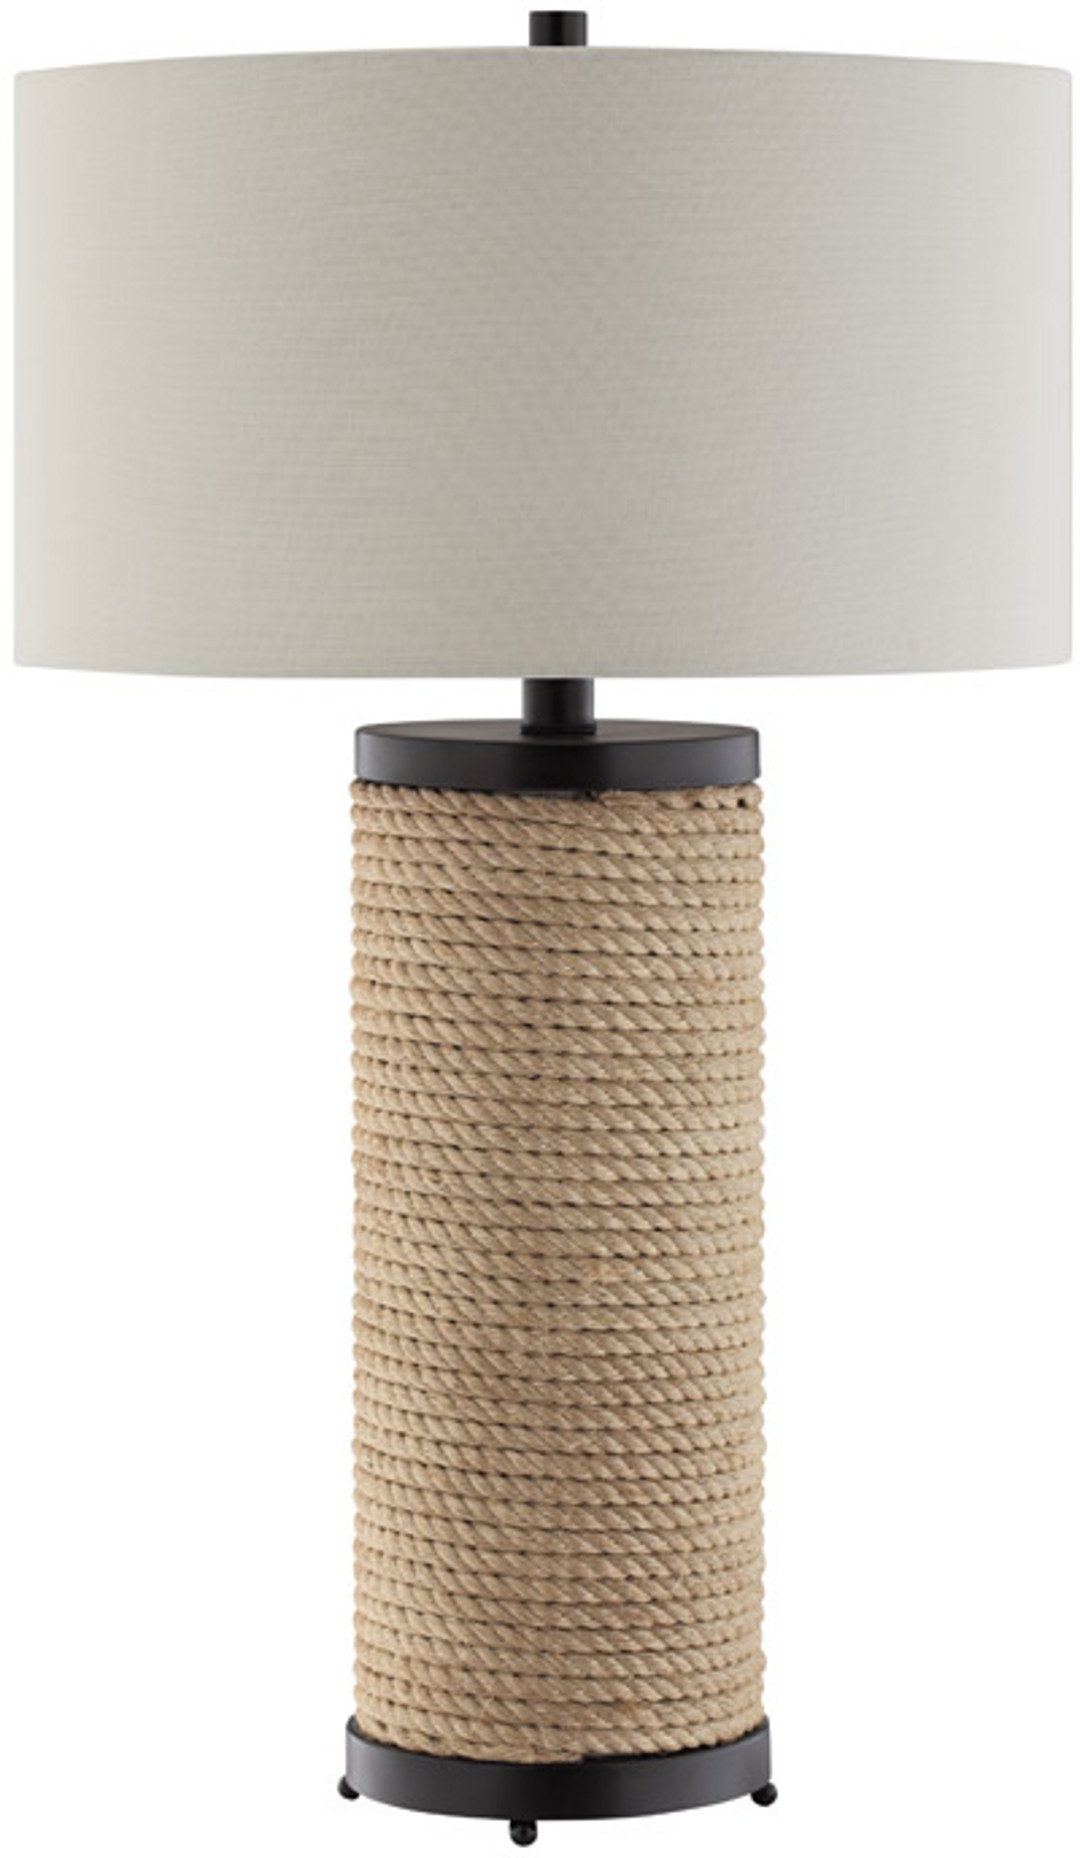 Decor Look Alikes | Wayfair Blyton Rope Lamp